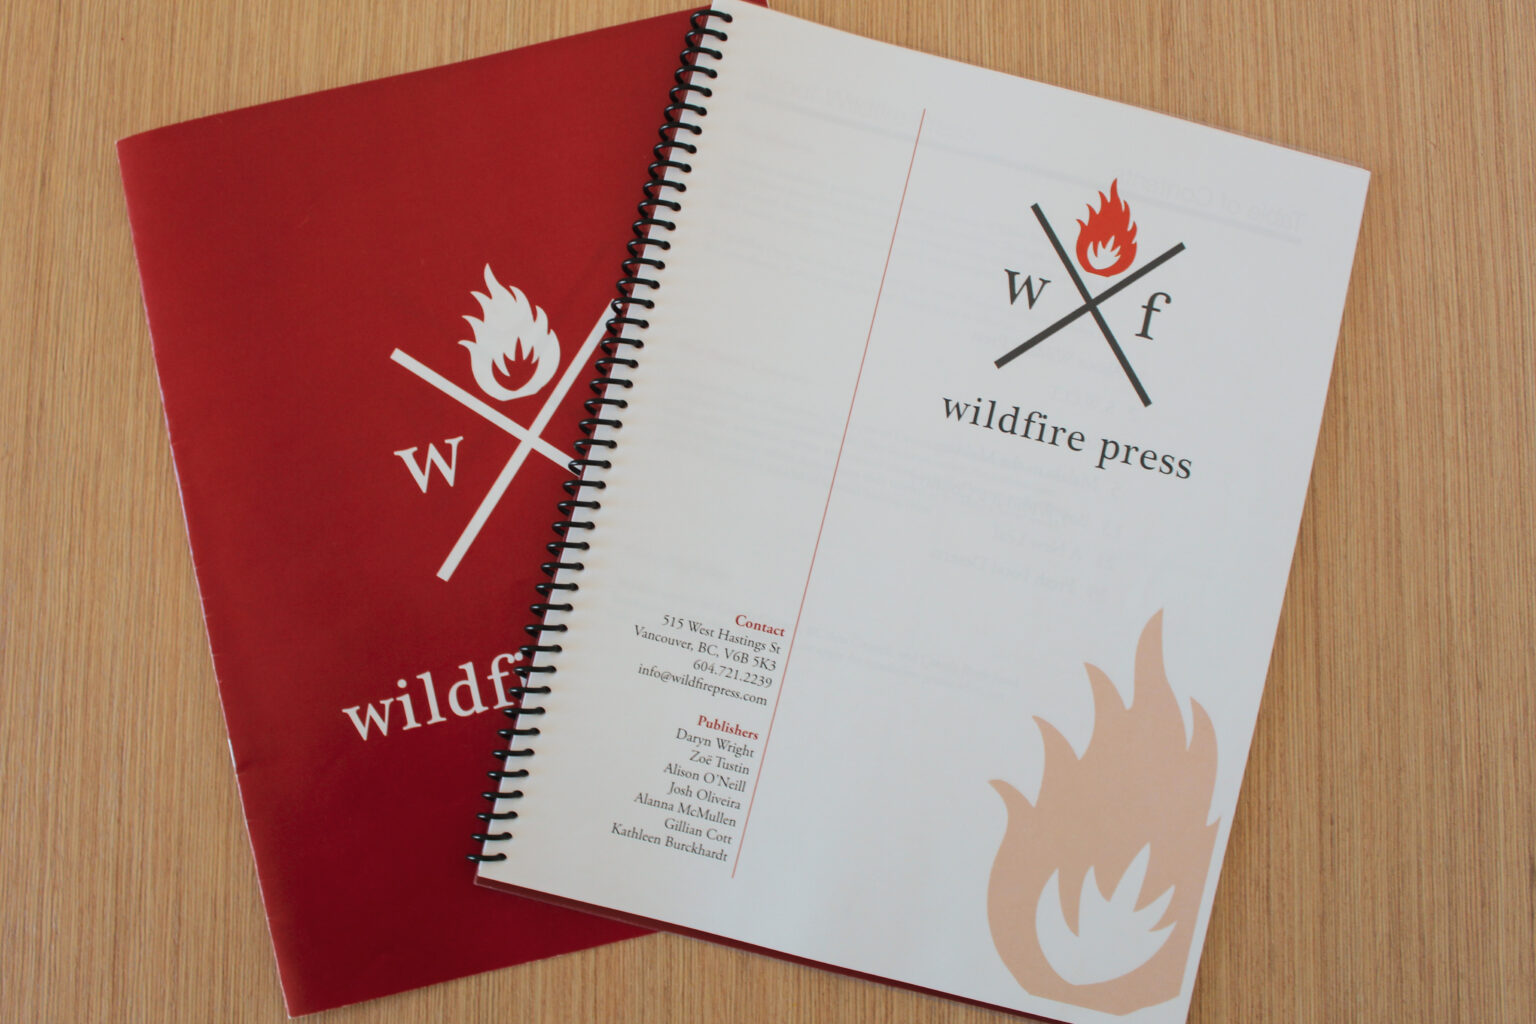 Wildfire Press project materials – report cover page